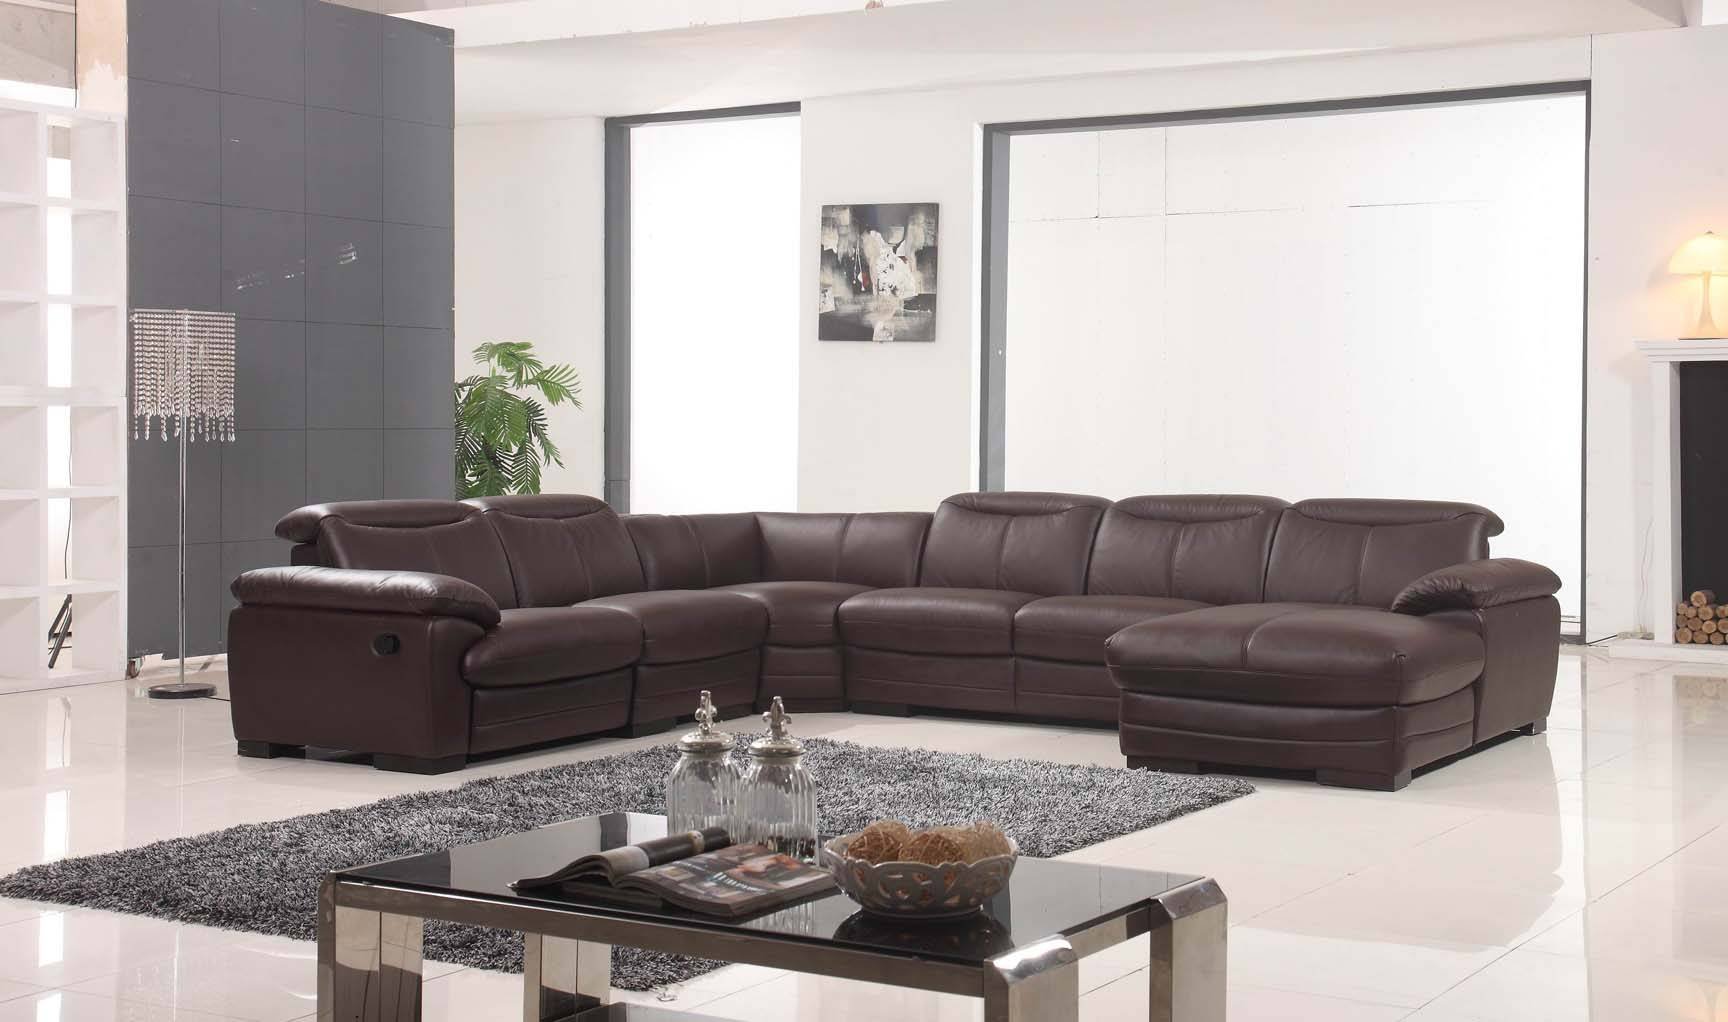 Large Brown Leather Contemporary Sectional Set With Recliner Chair Portland Oregon Esf 2146